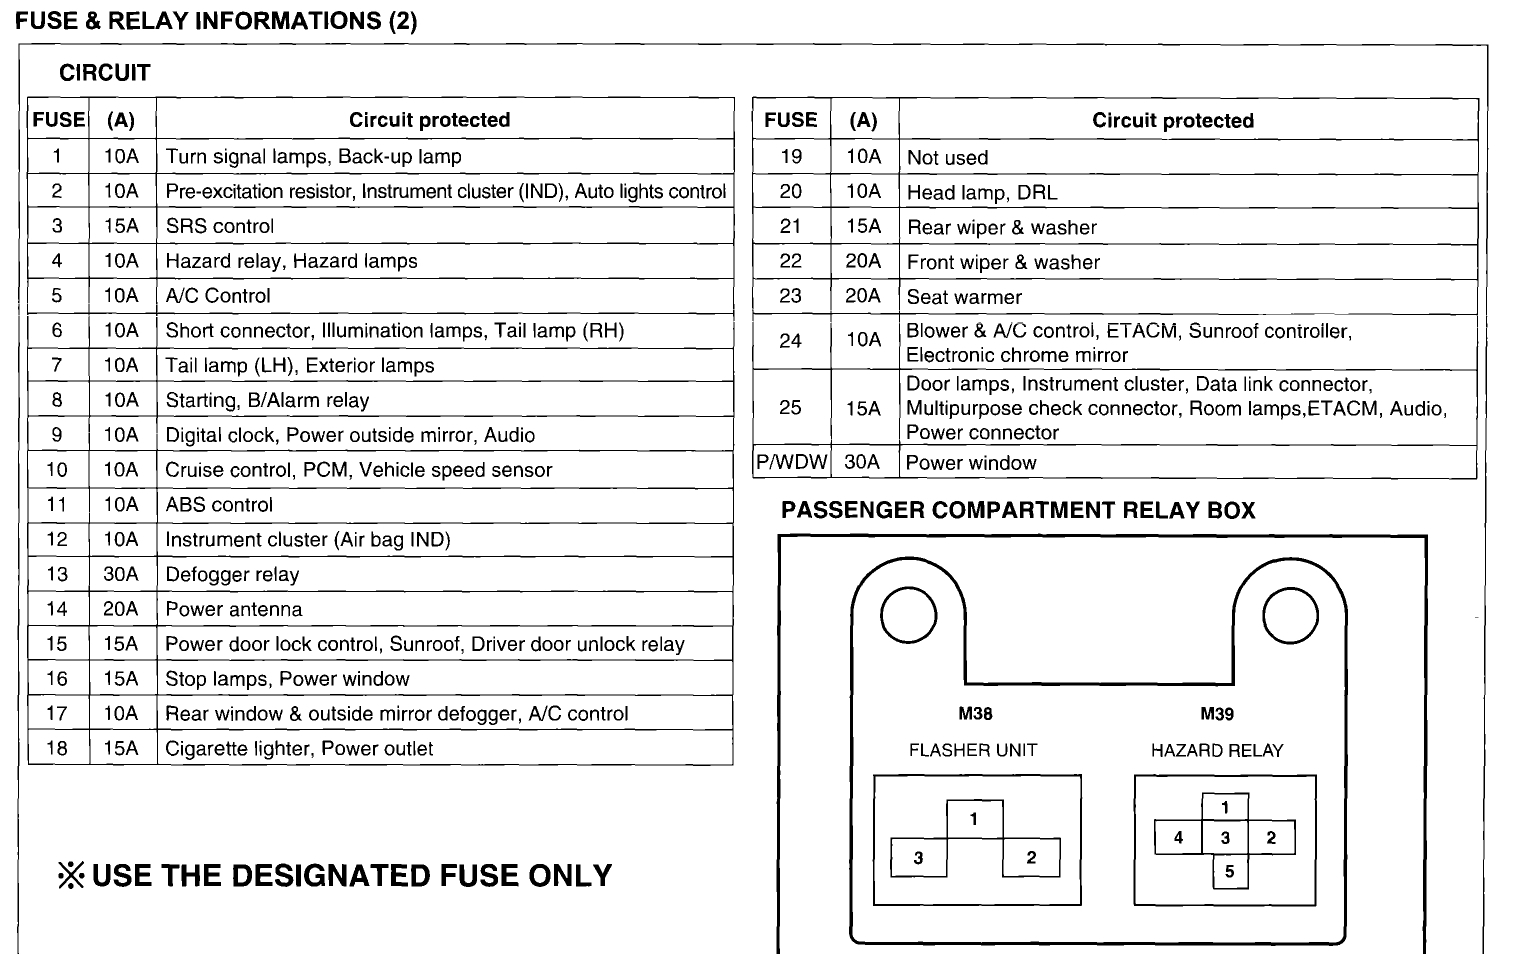 original signal light wiring diagram 2002 hyundai elantra 2006 hyundai 2002 hyundai xg350 fuse box diagram at eliteediting.co